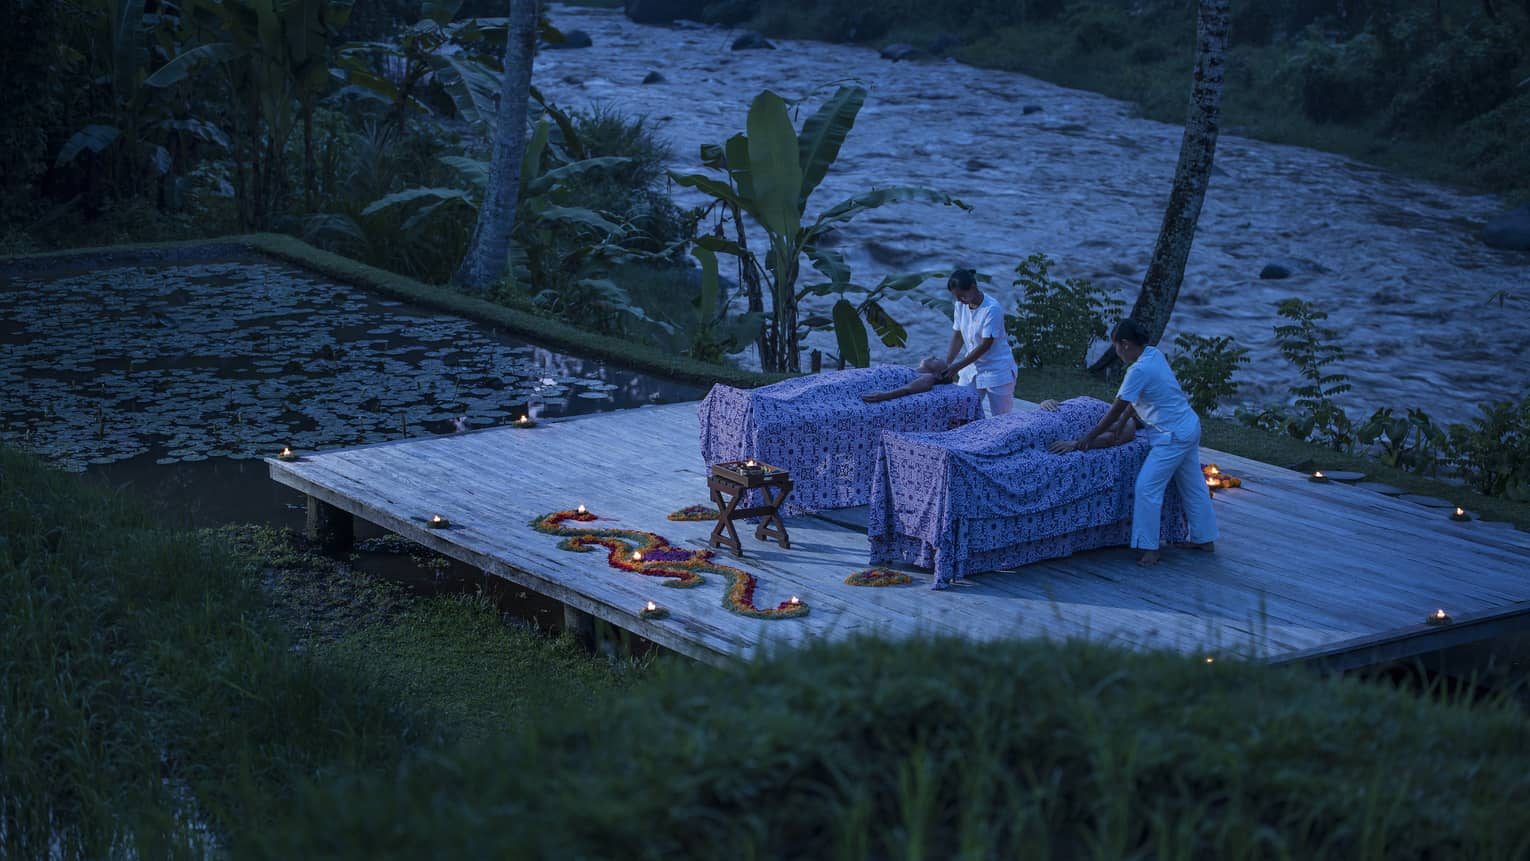 Two guests receive candle-lit massages on a dock at night